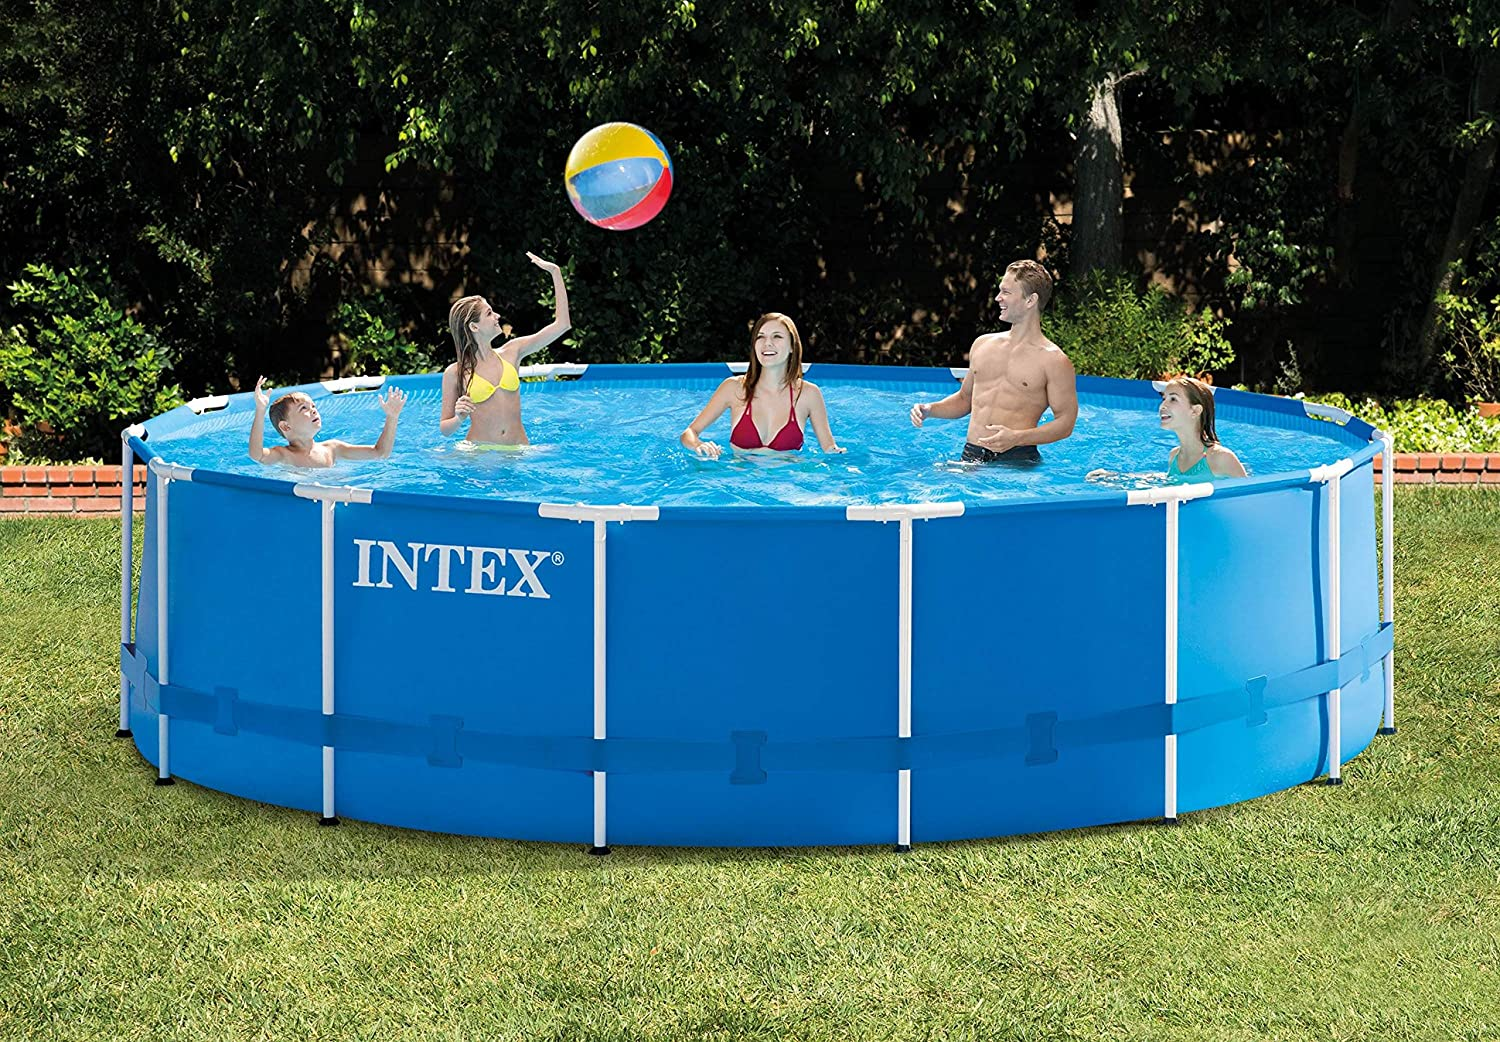 Intex 15ft X 48in Metal Frame Above Ground Swimming Pool Set 15ft Pool Cover Garden Outdoor